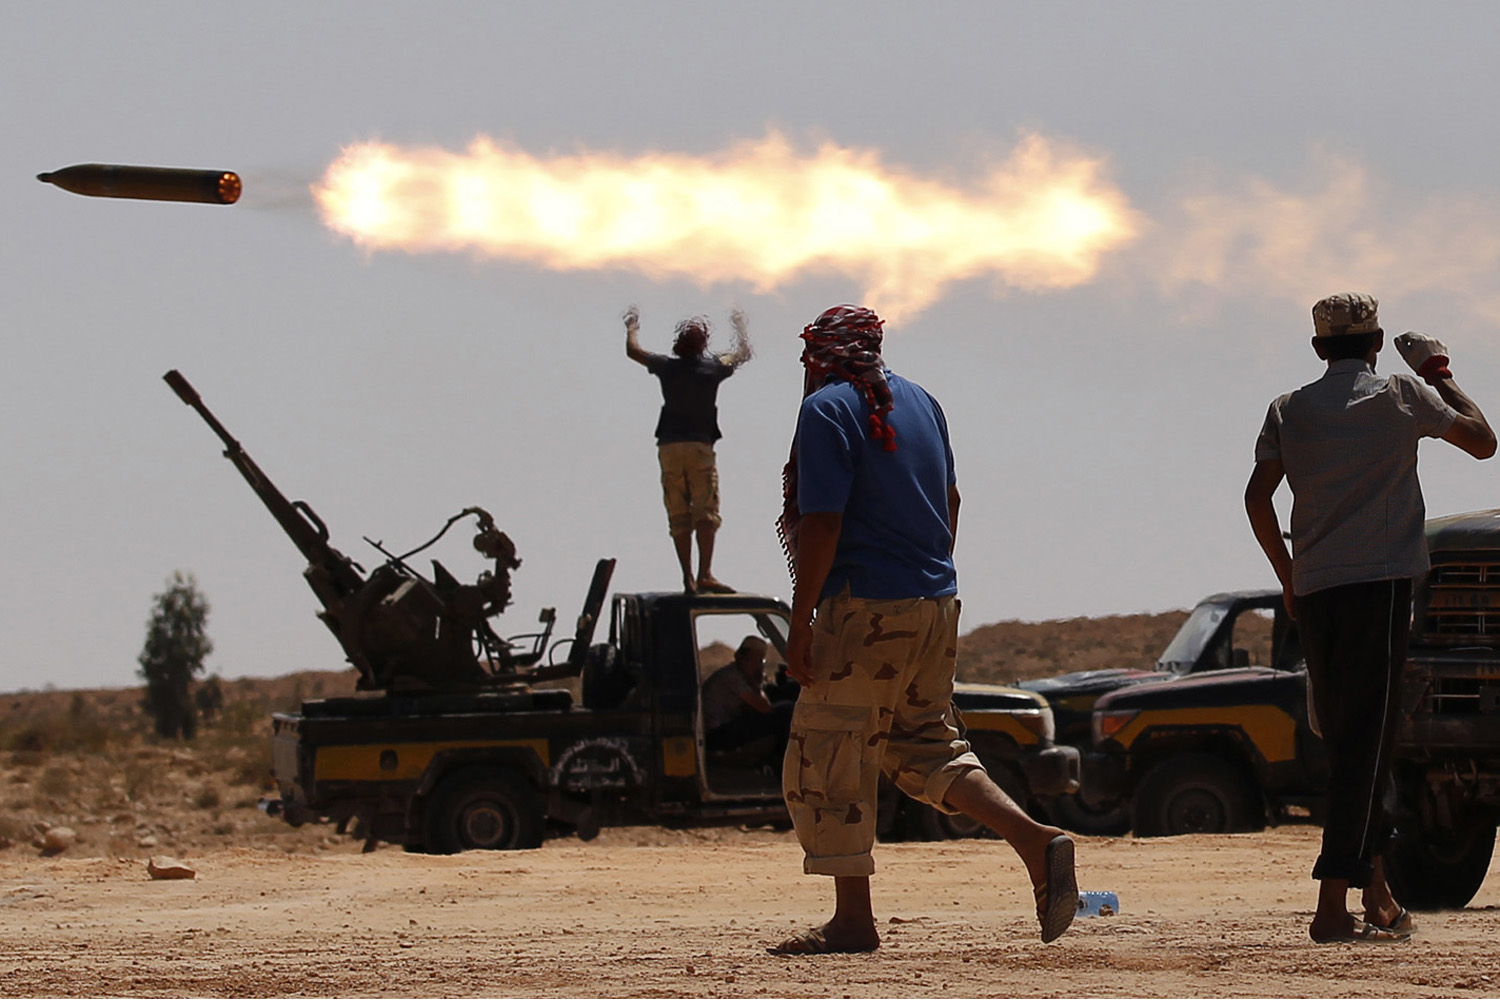 September 24, 2011. Anti-Gaddafi fighters fire a multiple rocket launcher near Sirte, one of Muammar Gaddafi's last remaining strongholds. Libyan provisional government forces backed by NATO warplanes swarmed into the city of Sirte but weathered heavy sniper fire as they tried to win control of one of deposed leader Muammar Gaddafi's last bastions of support.